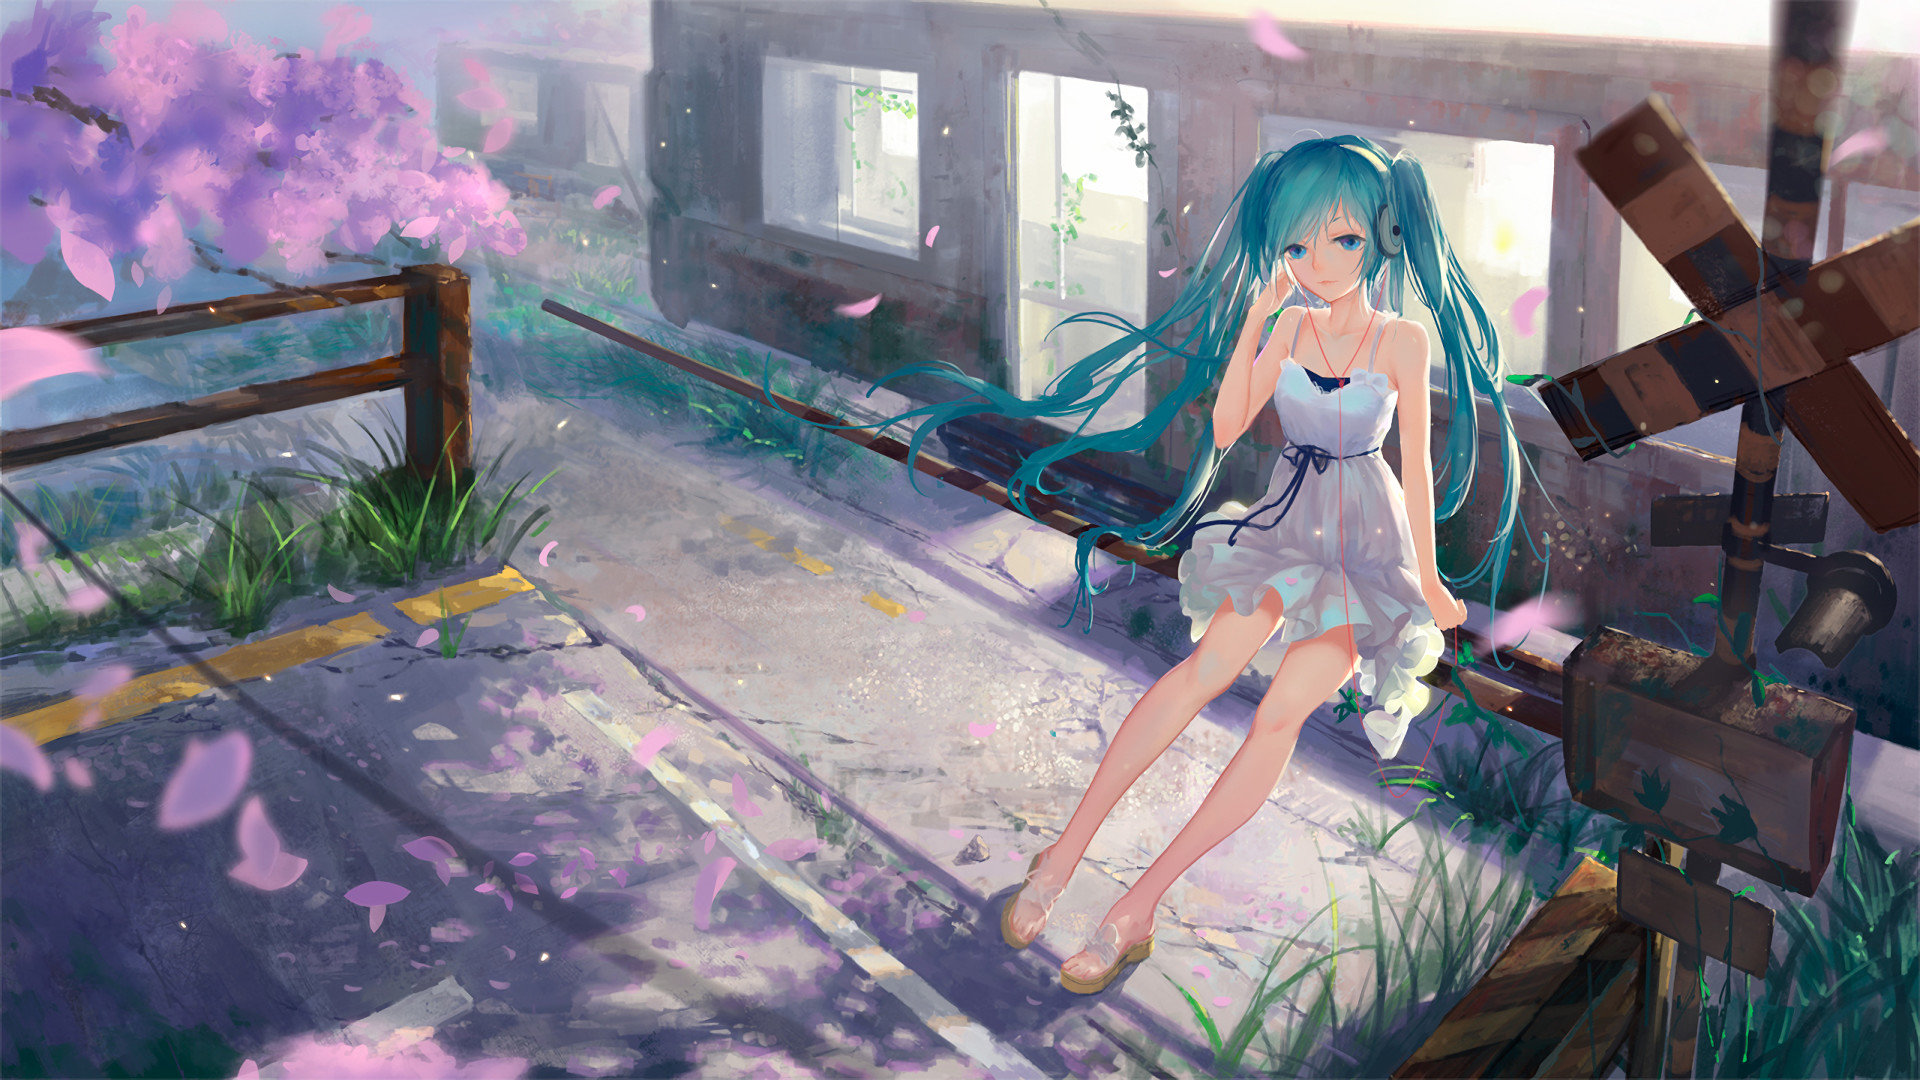 Awesome Hatsune Miku Free Wallpaper Id 1894 For Full Hd 1080p Pc